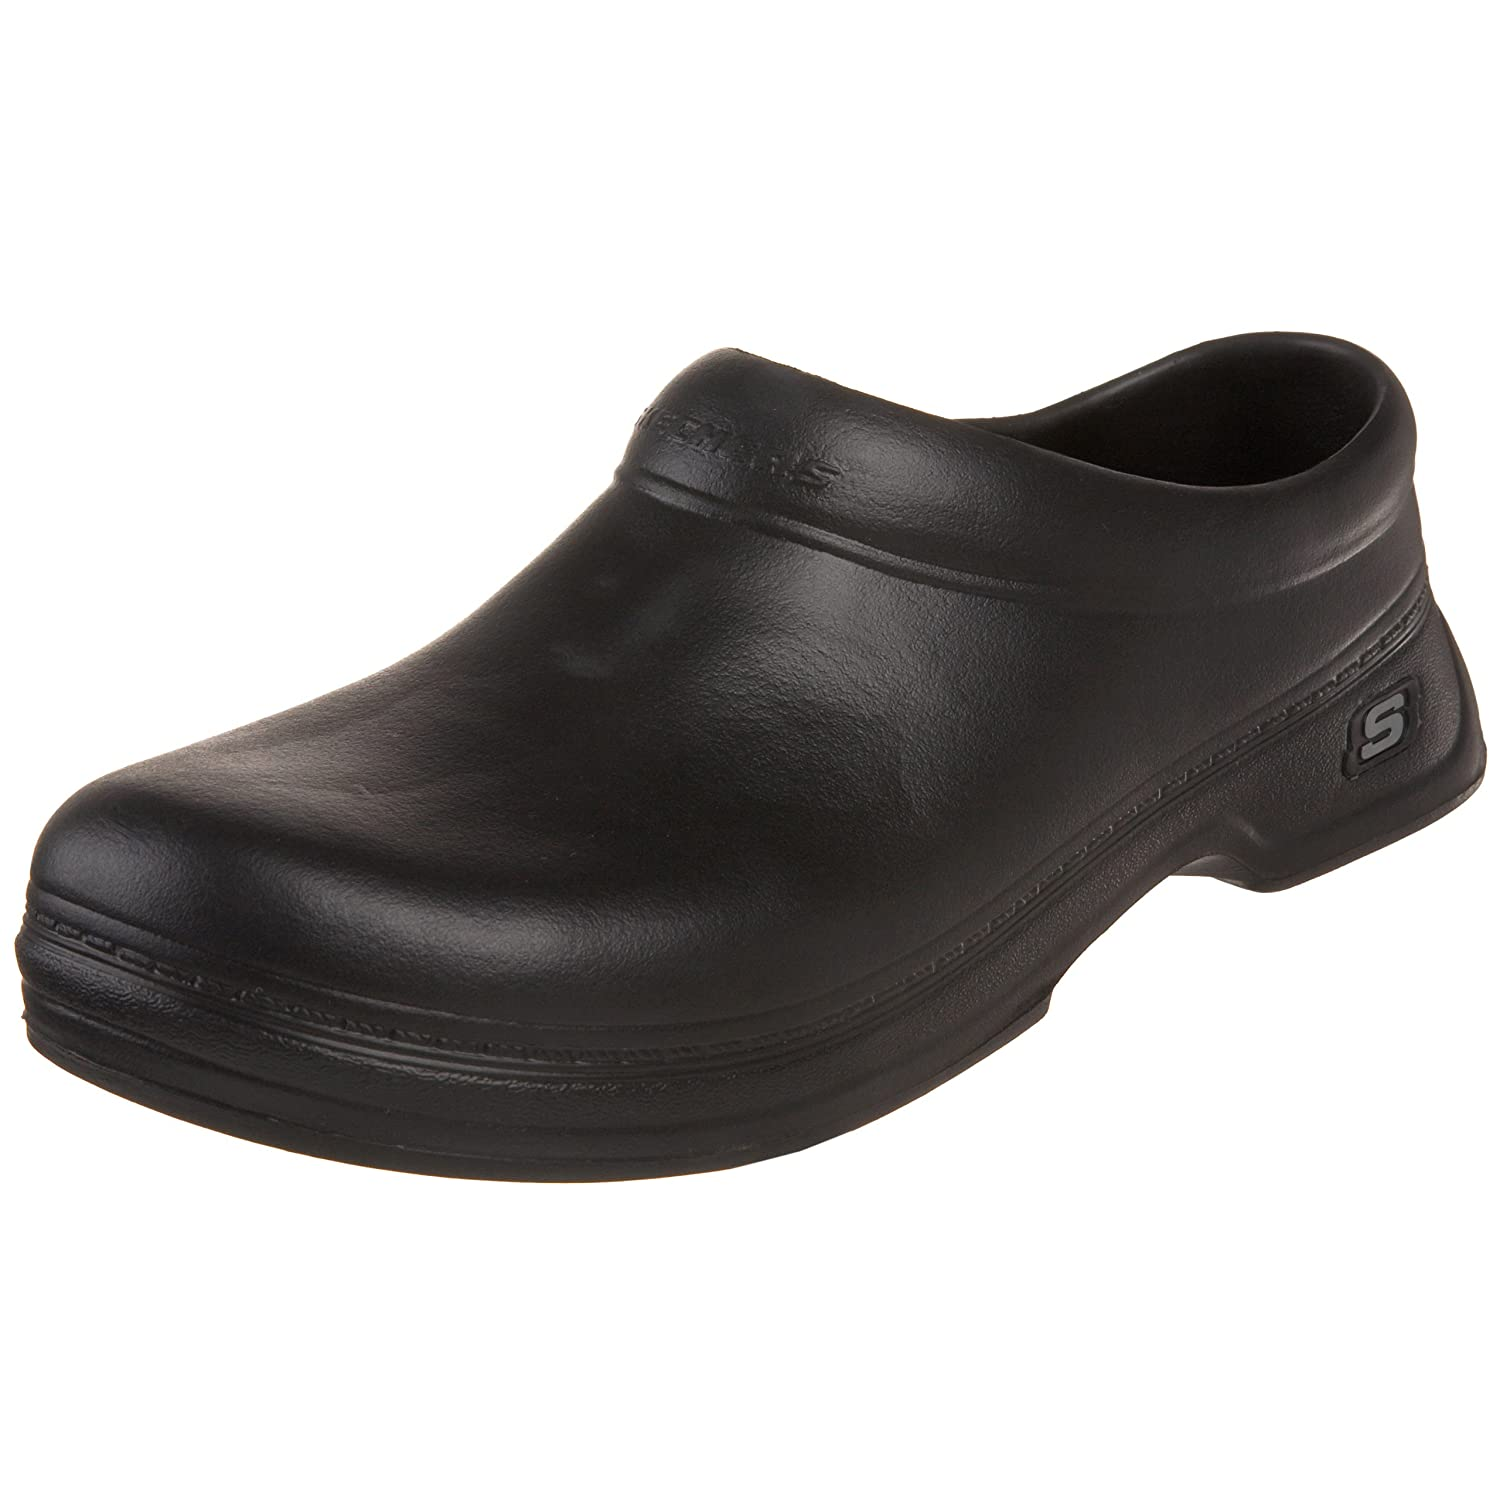 Skechers for Work Men's Balder Slip Resistant Work Clog 76778